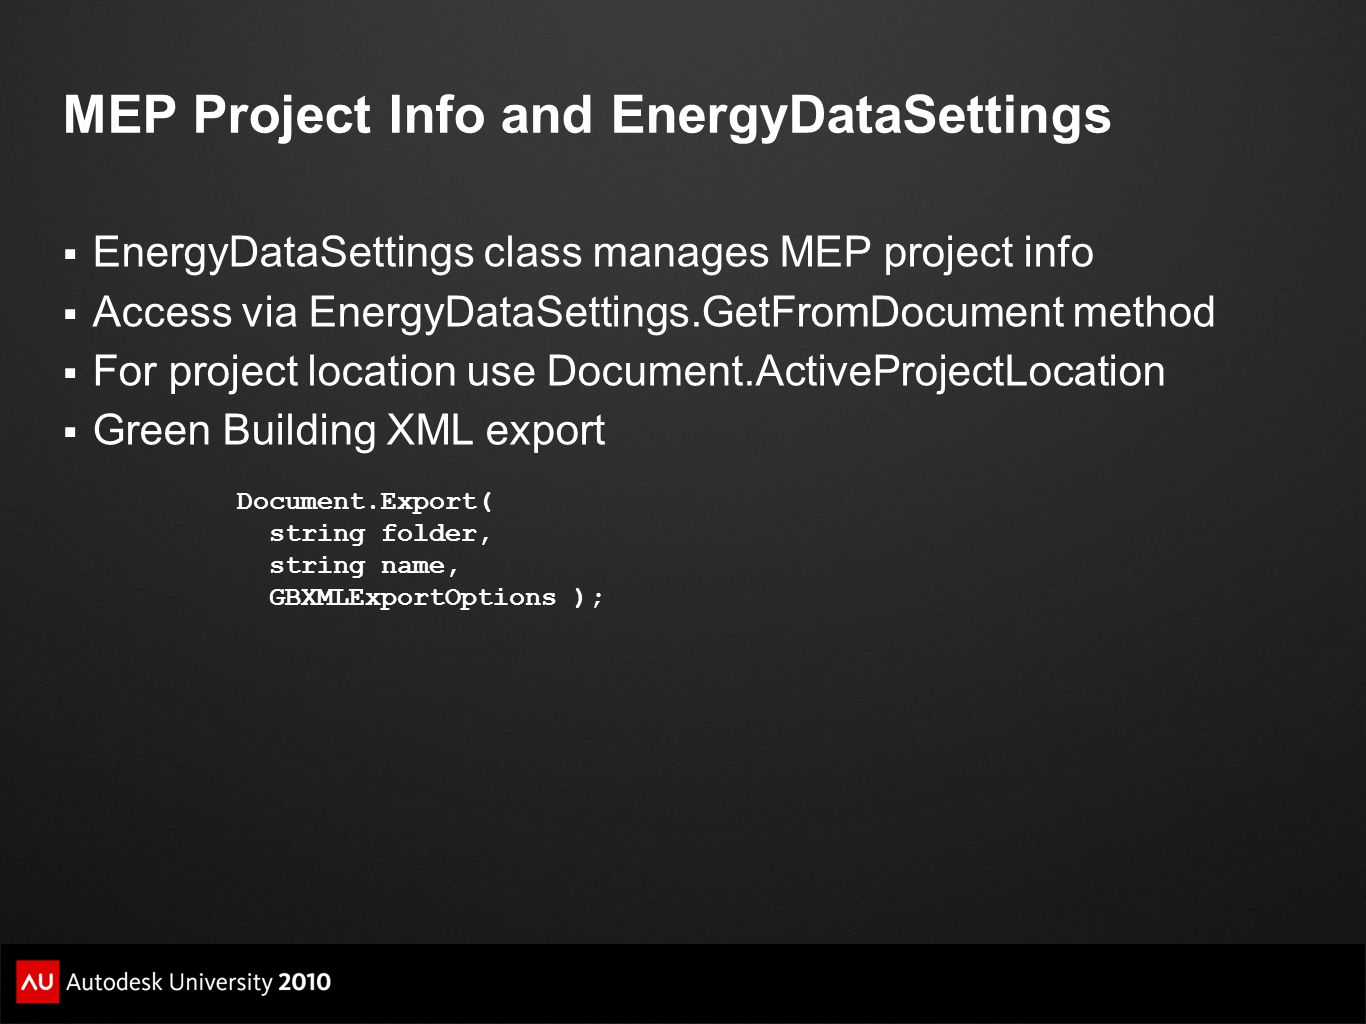 MEP Project Info and EnergyDataSettings